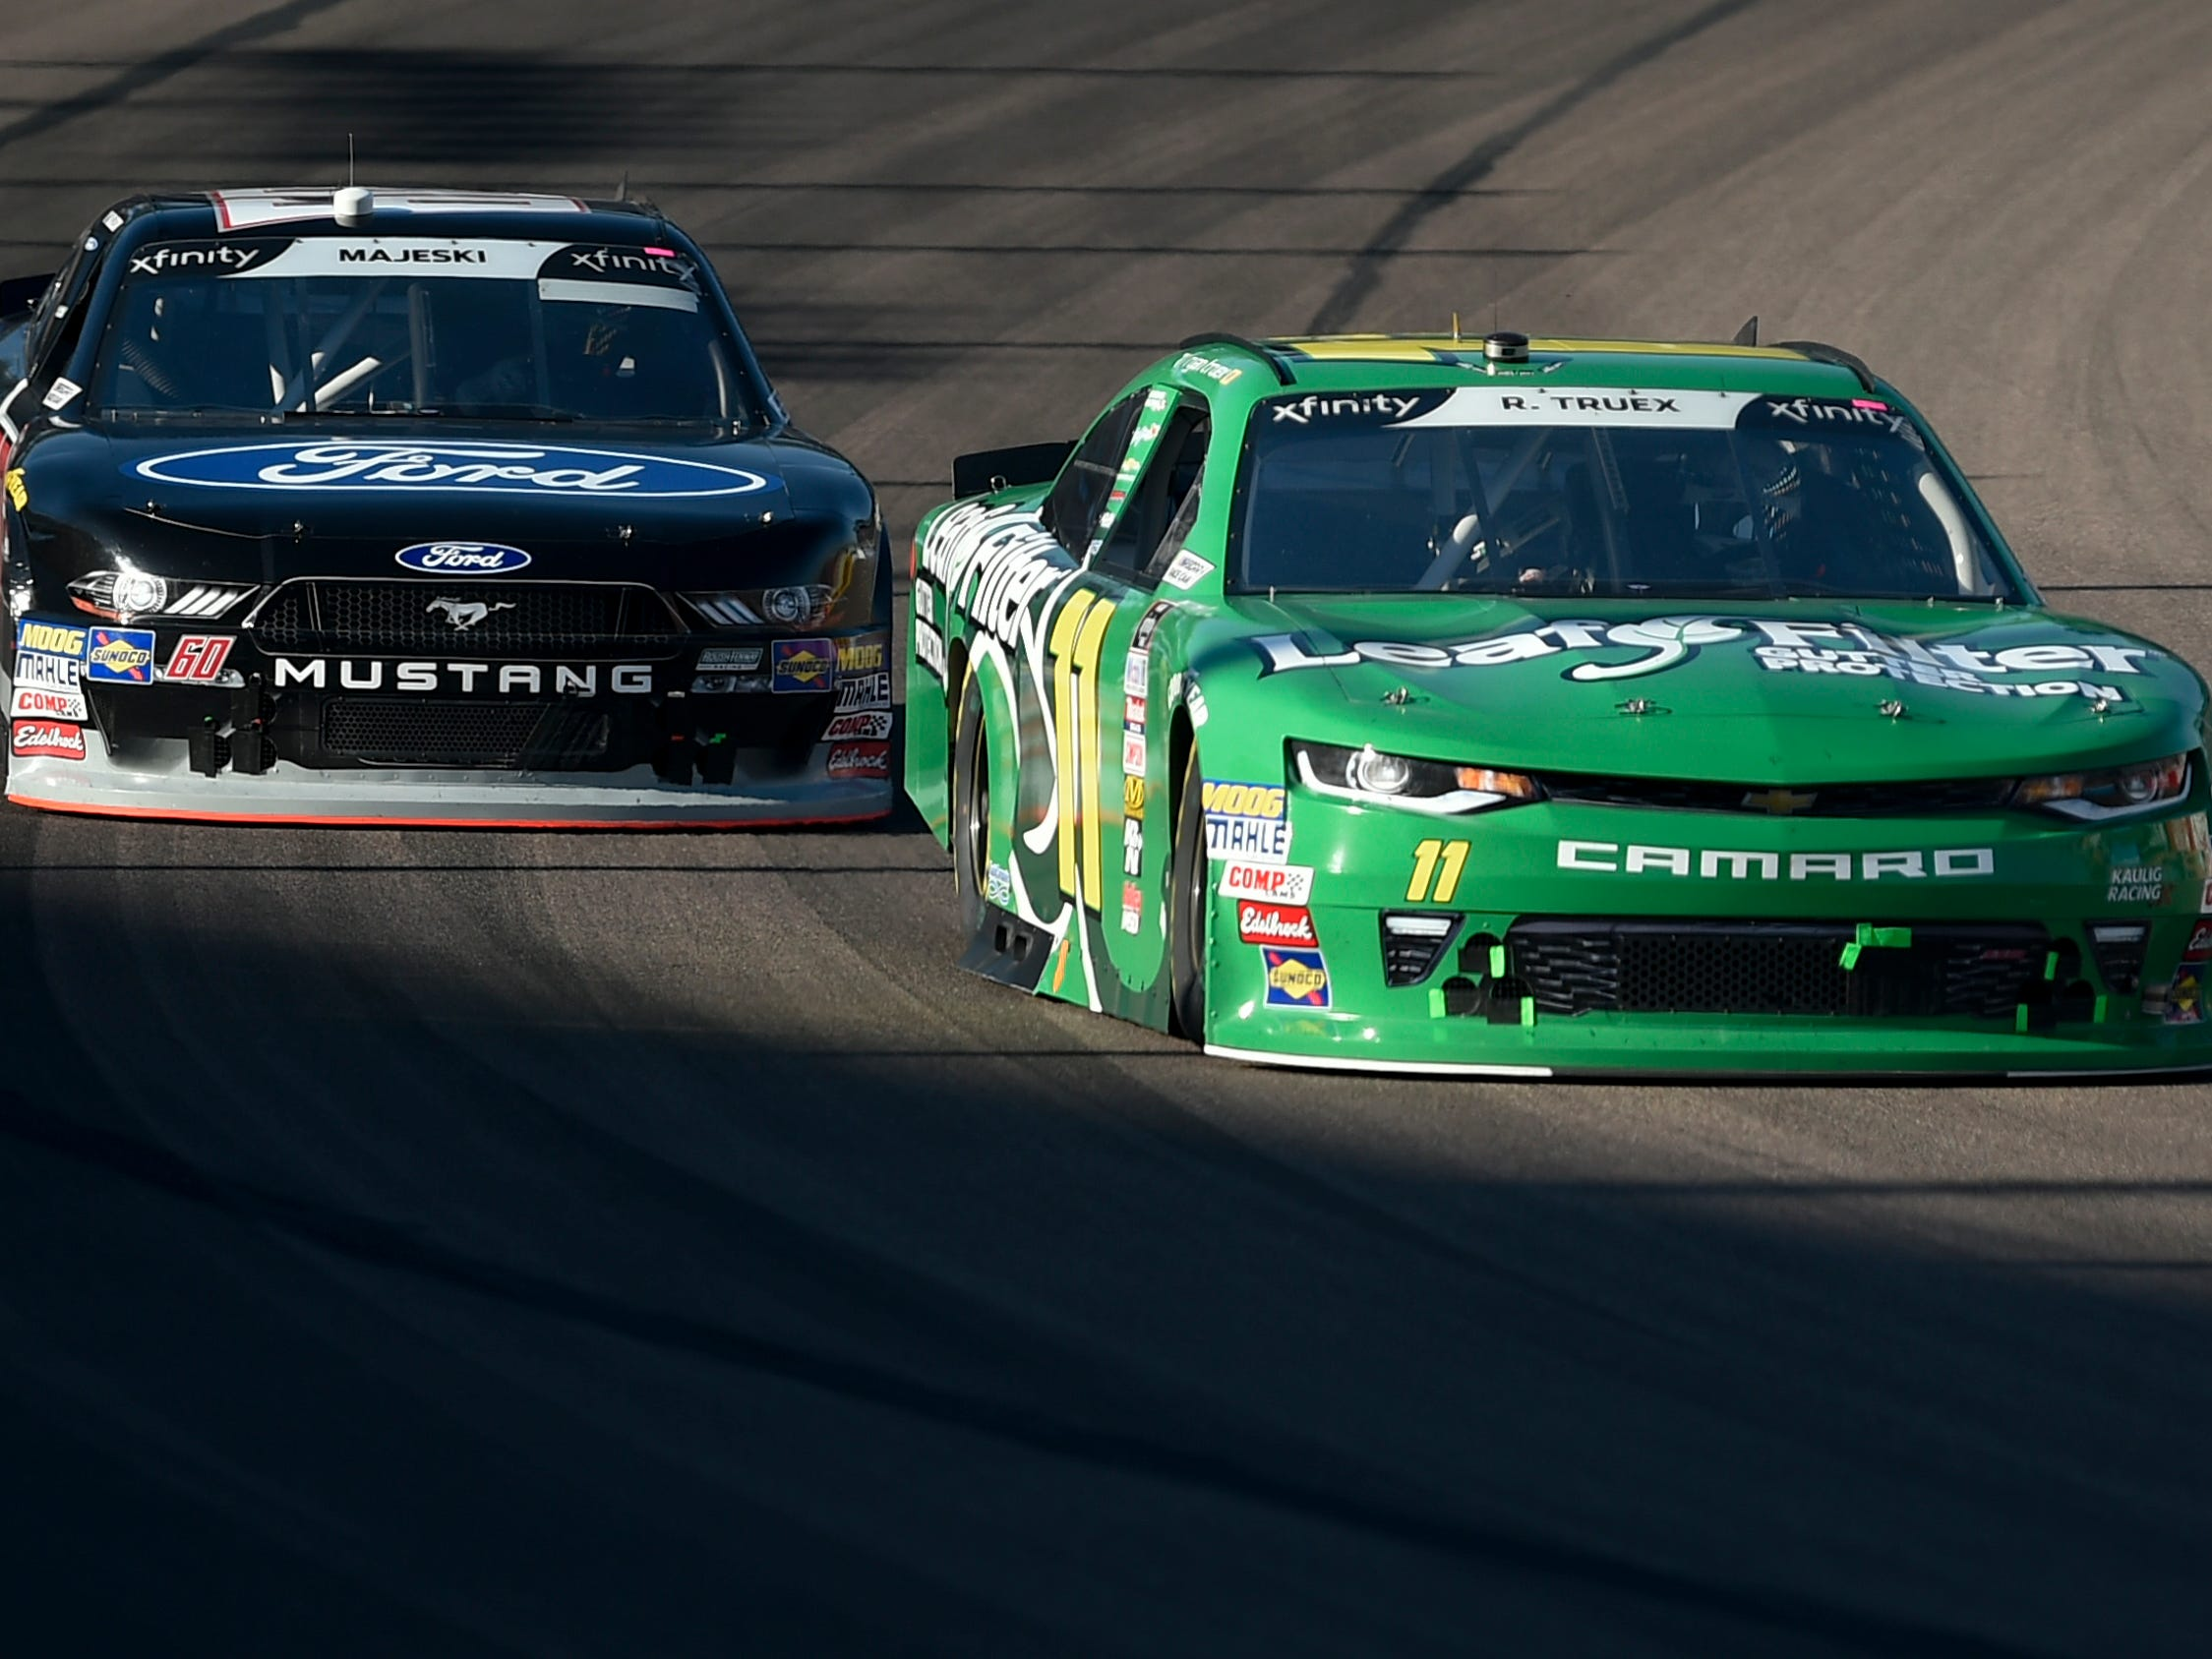 Nov 10, 2018; Avondale, AZ, USA; NASCAR Xfinity Series driver Ryan Truex (11) ahead of NASCAR Xfinity Series driver Ty Majeski (60) during the NASCAR Xfinity Series Race at ISM Raceway. Mandatory Credit: Kelvin Kuo-USA TODAY Sports